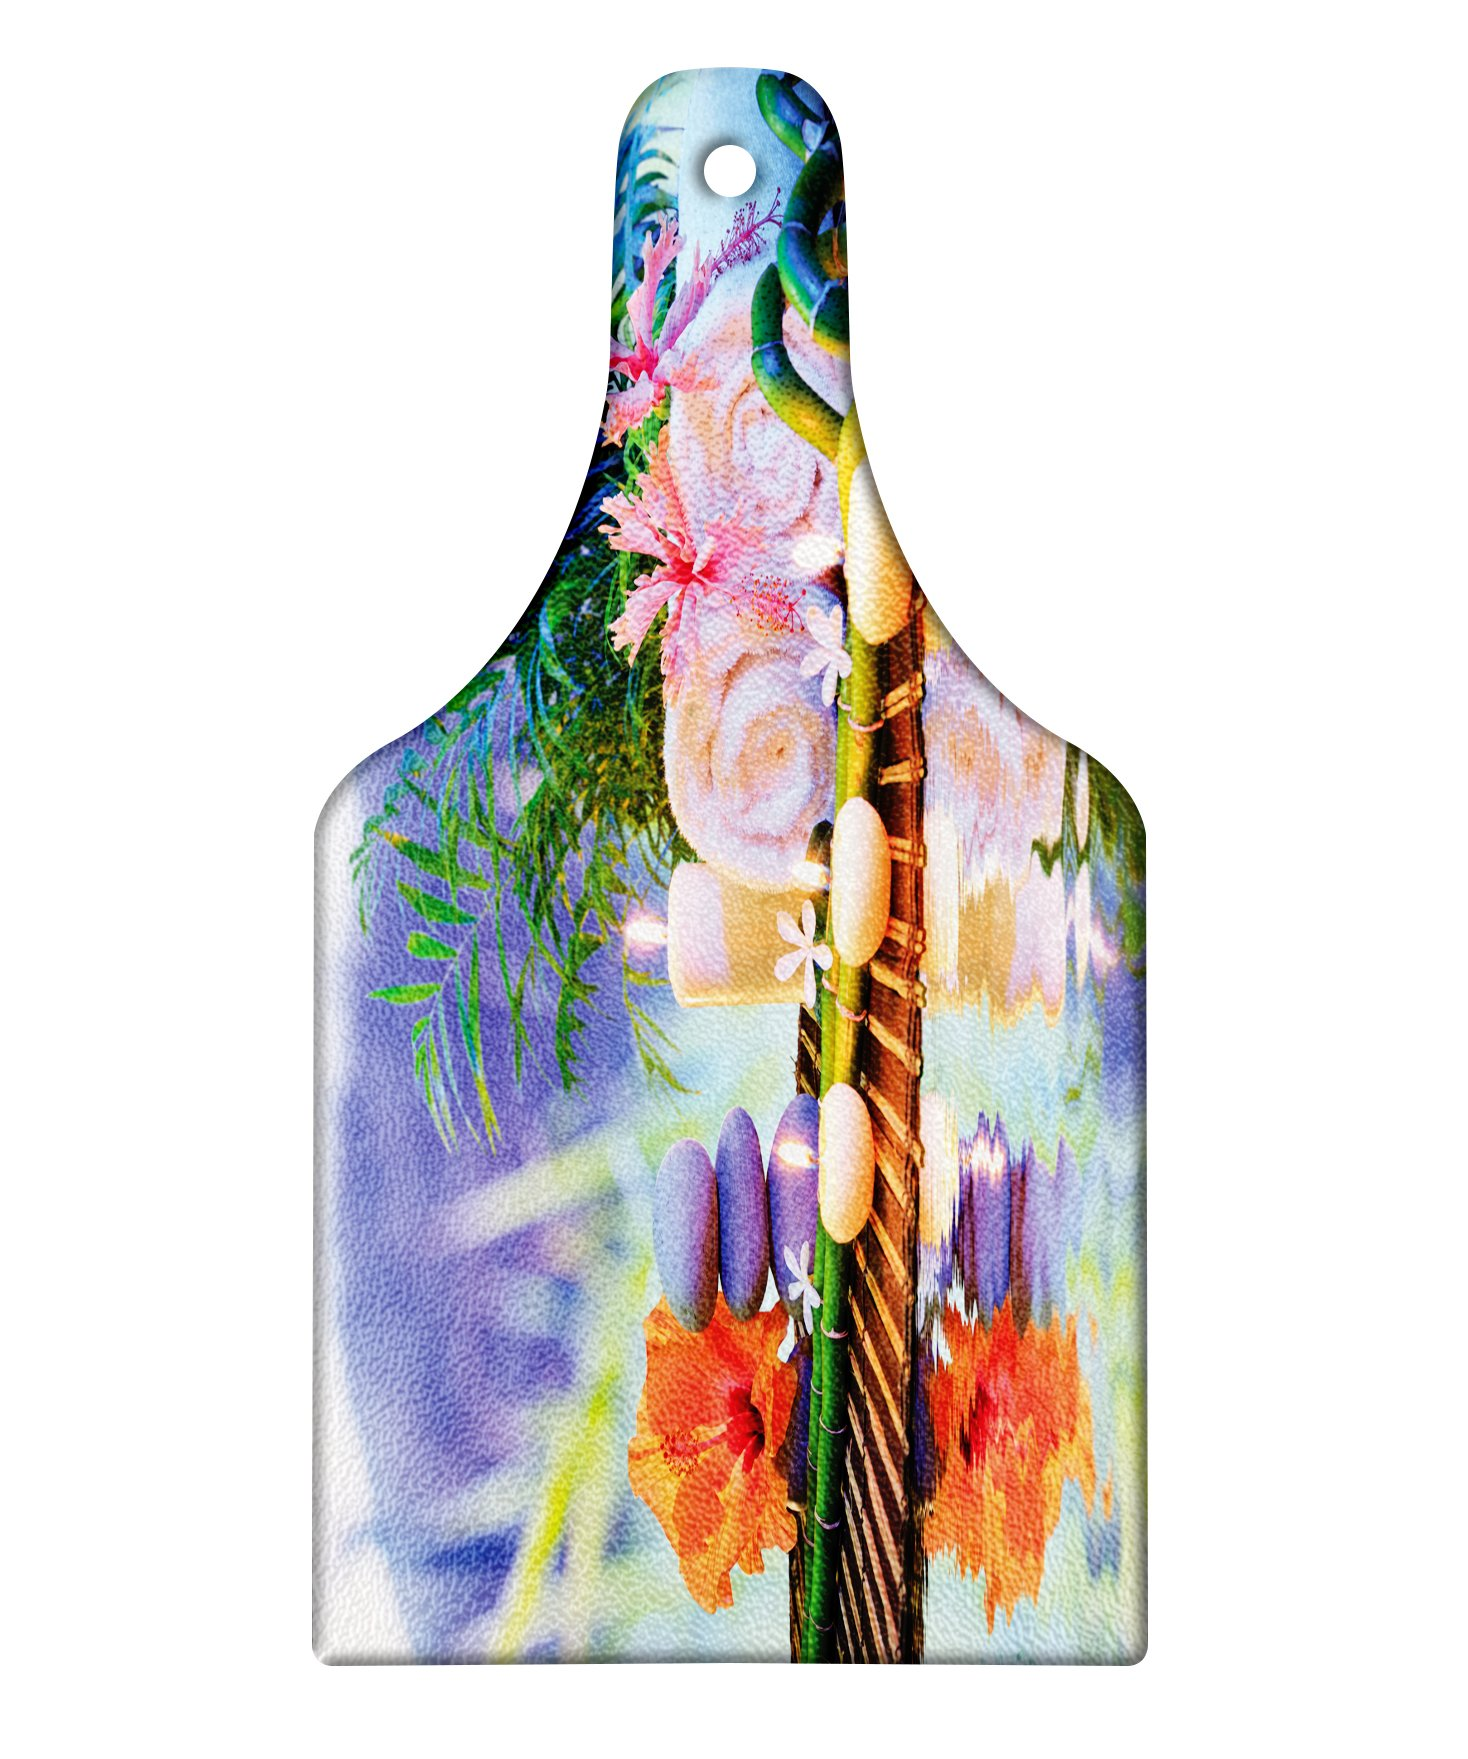 Lunarable Spa Cutting Board, Asian Stones Aromatherapy Relaxation Meditation Zen Nature Bamboo Stems Yoga Concept, Decorative Tempered Glass Cutting and Serving Board, Wine Bottle Shape, Multicolor